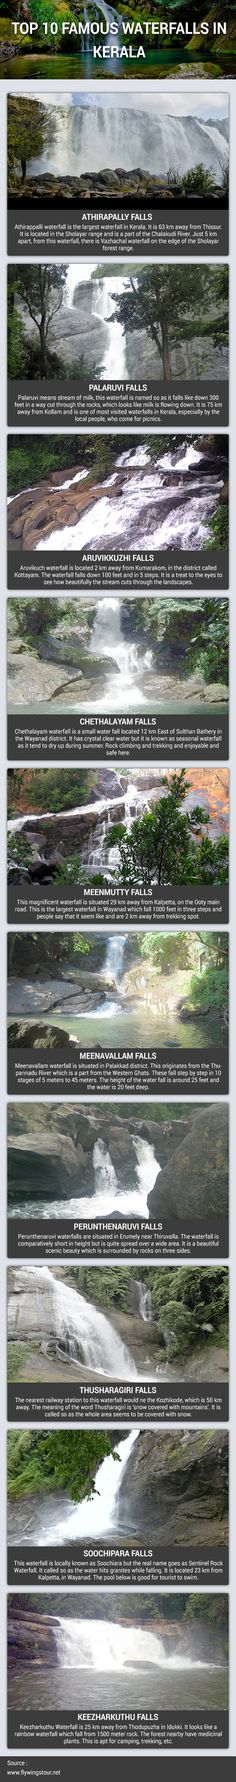 Check out an #Infographics about the Famous #Waterfalls in #Kerala. #Chandigarh #Mohali #Panchkula #Taxiservice #Touroperator #Travel #India